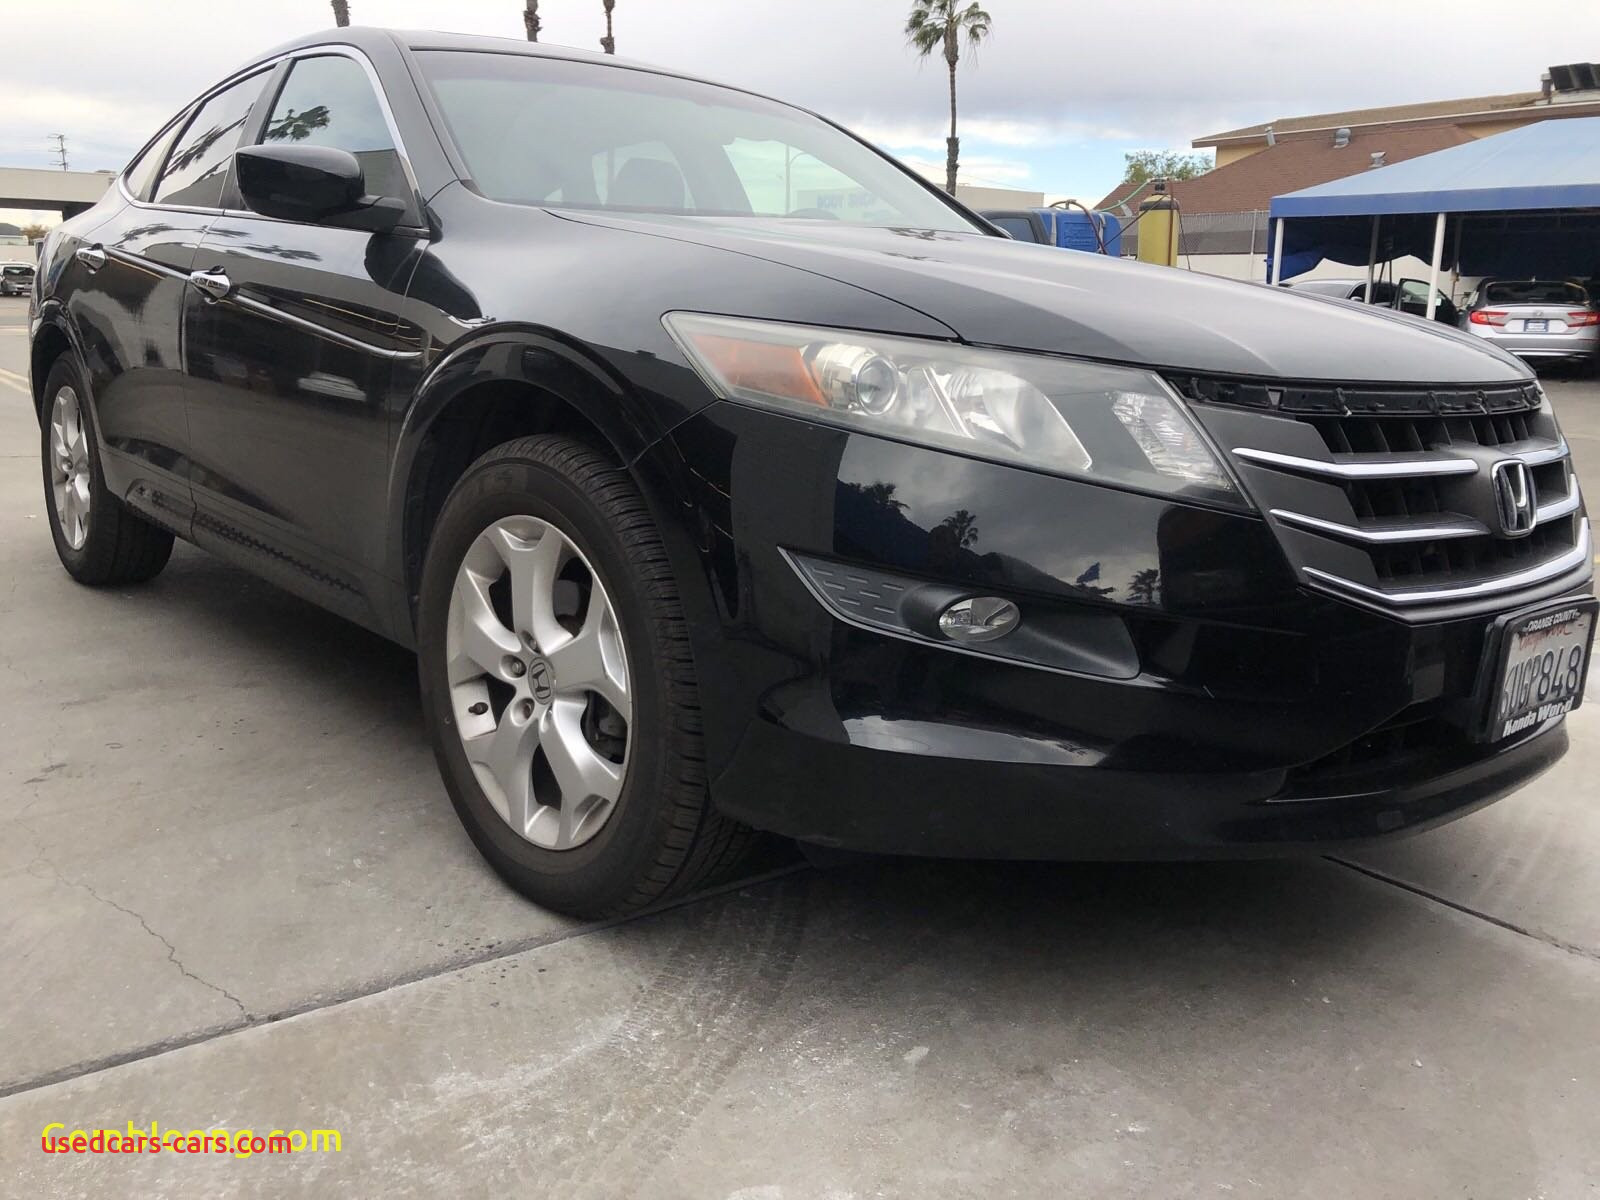 Used Cars for Sale $10000 by Owner Unique Fresh Cars for Sale by Owner Near Me Under